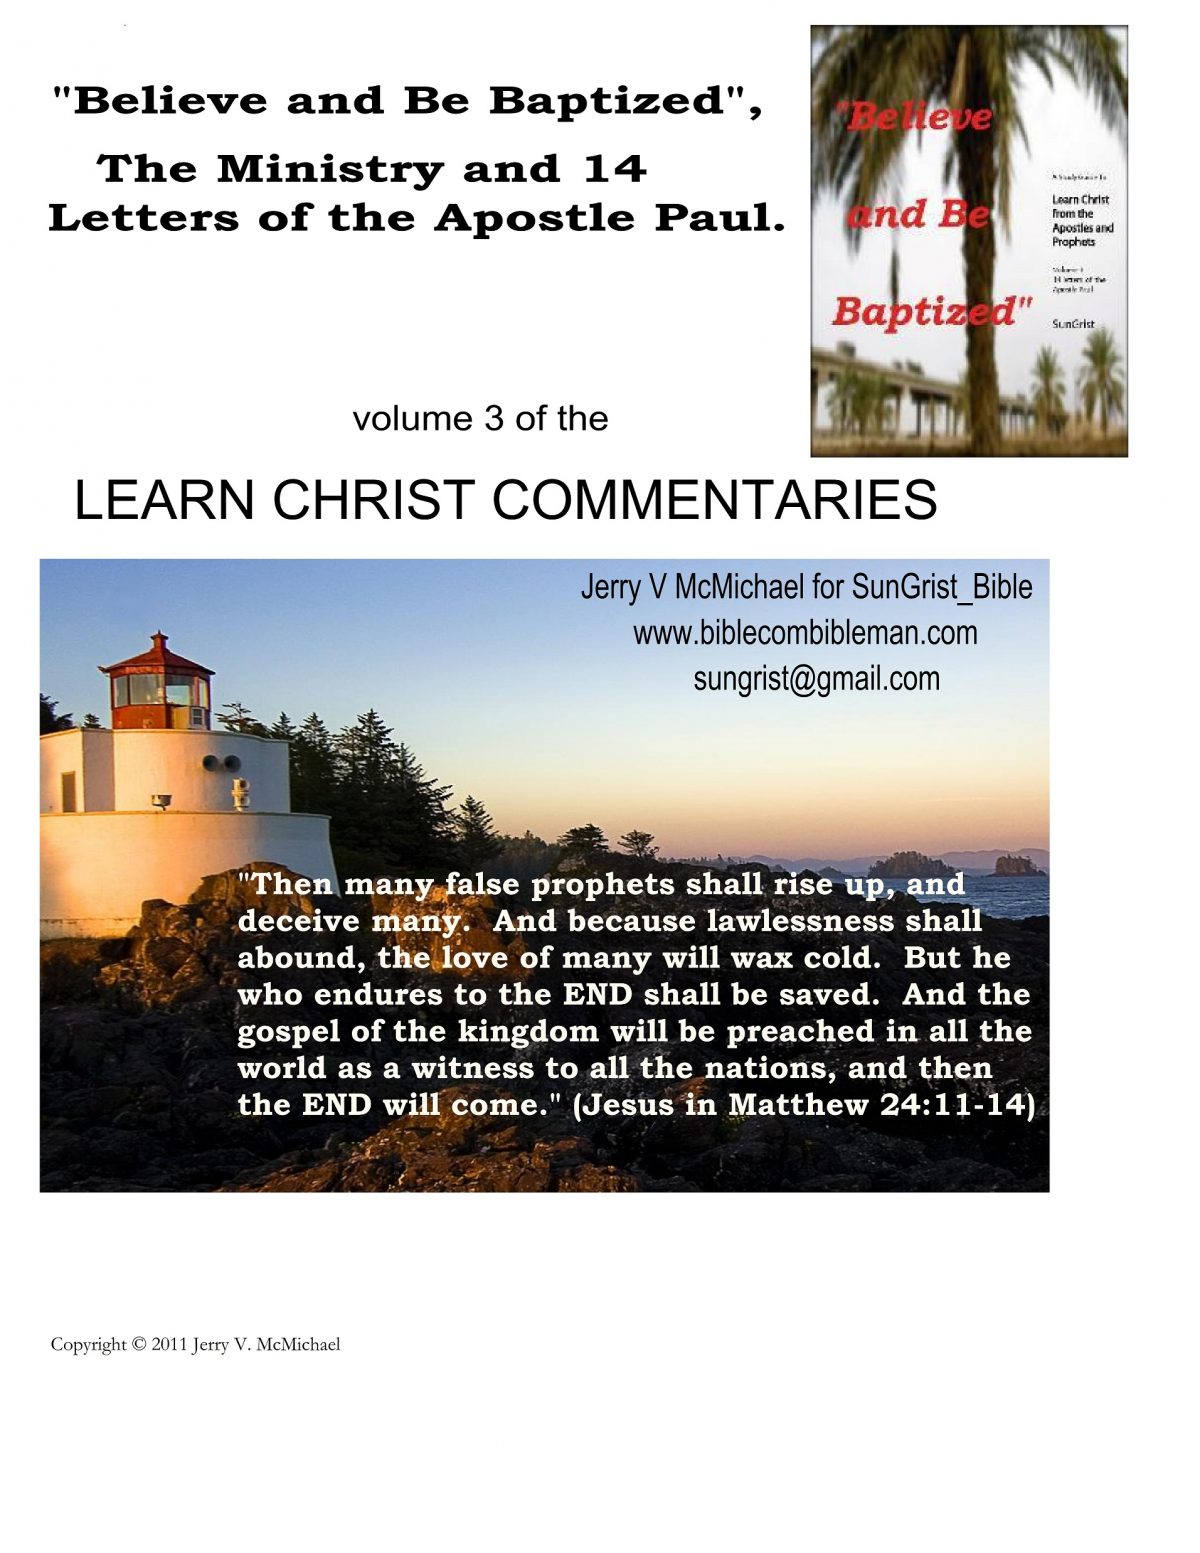 About Life and Letters of Paul